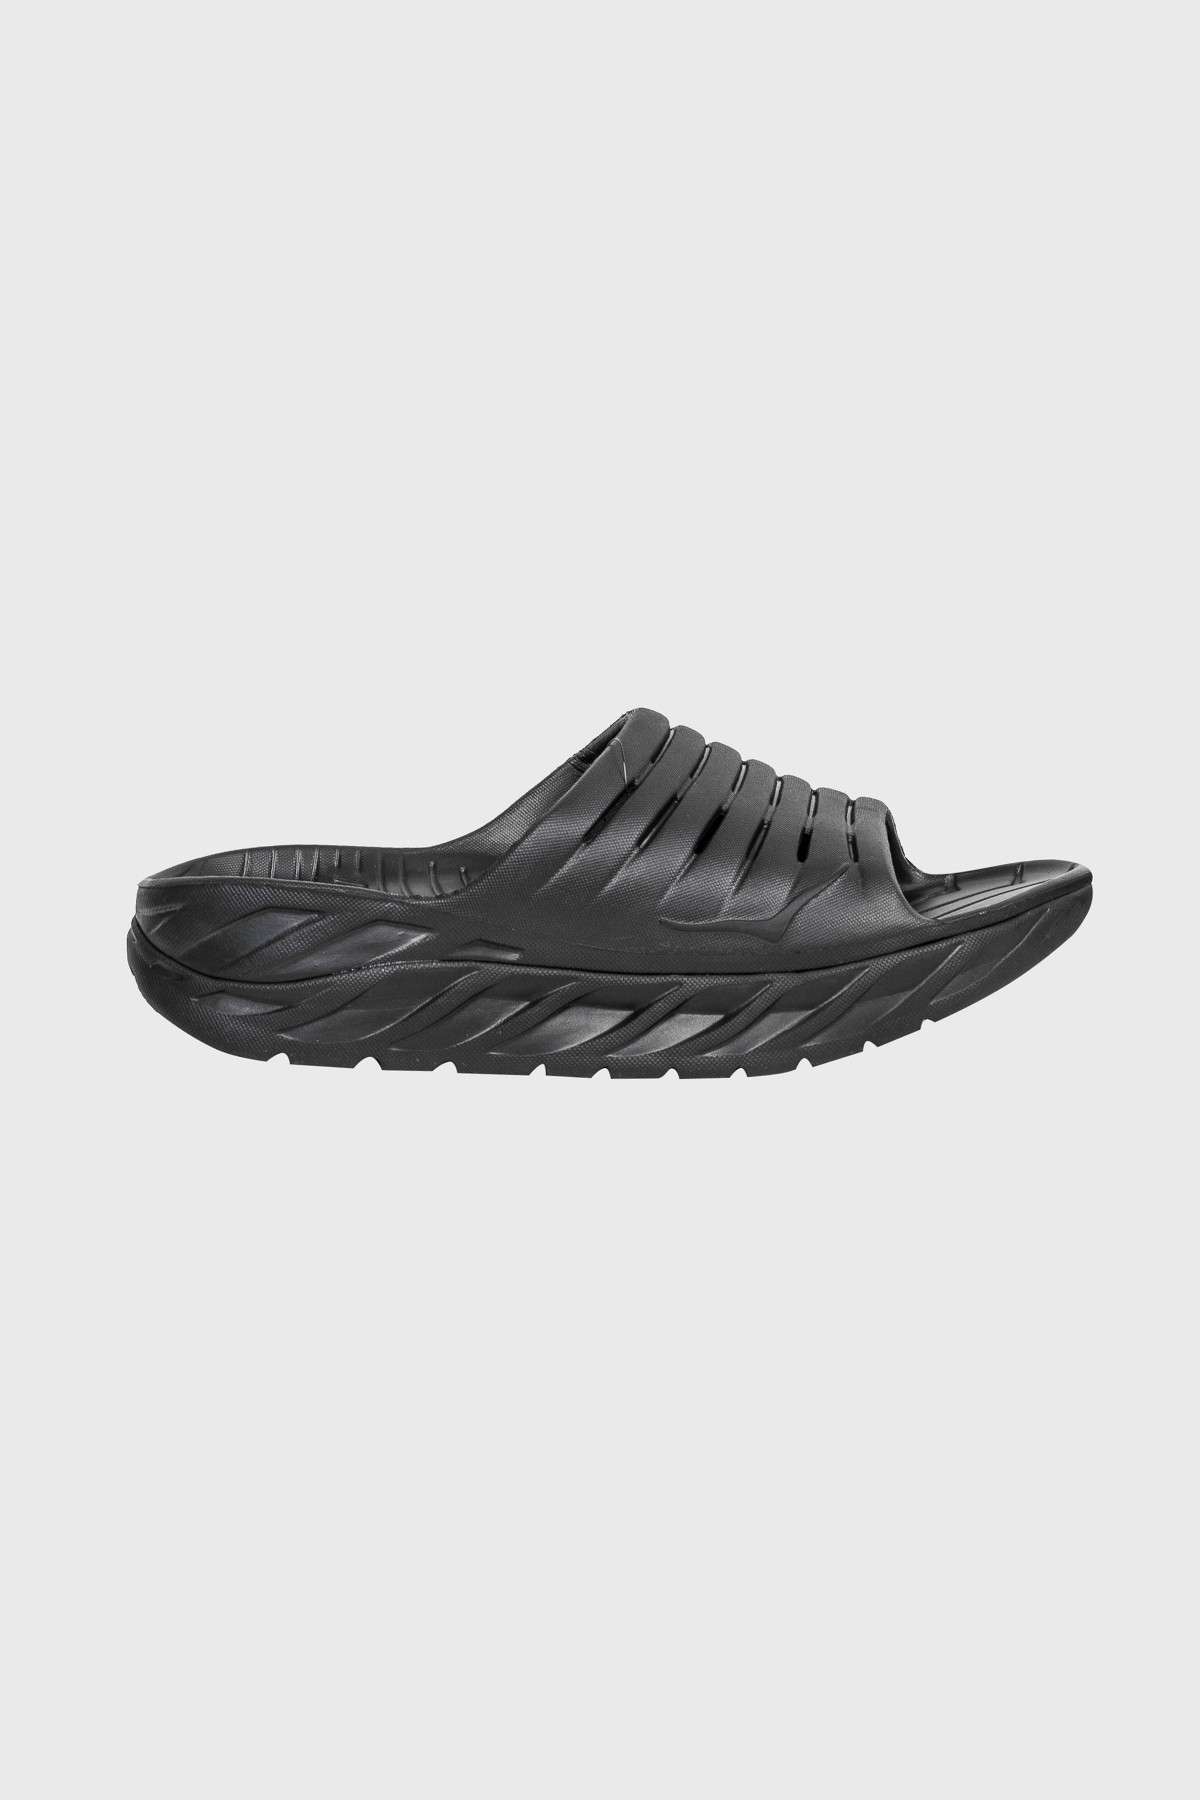 Hoka One One - Ora Recovery Slide 2 - black